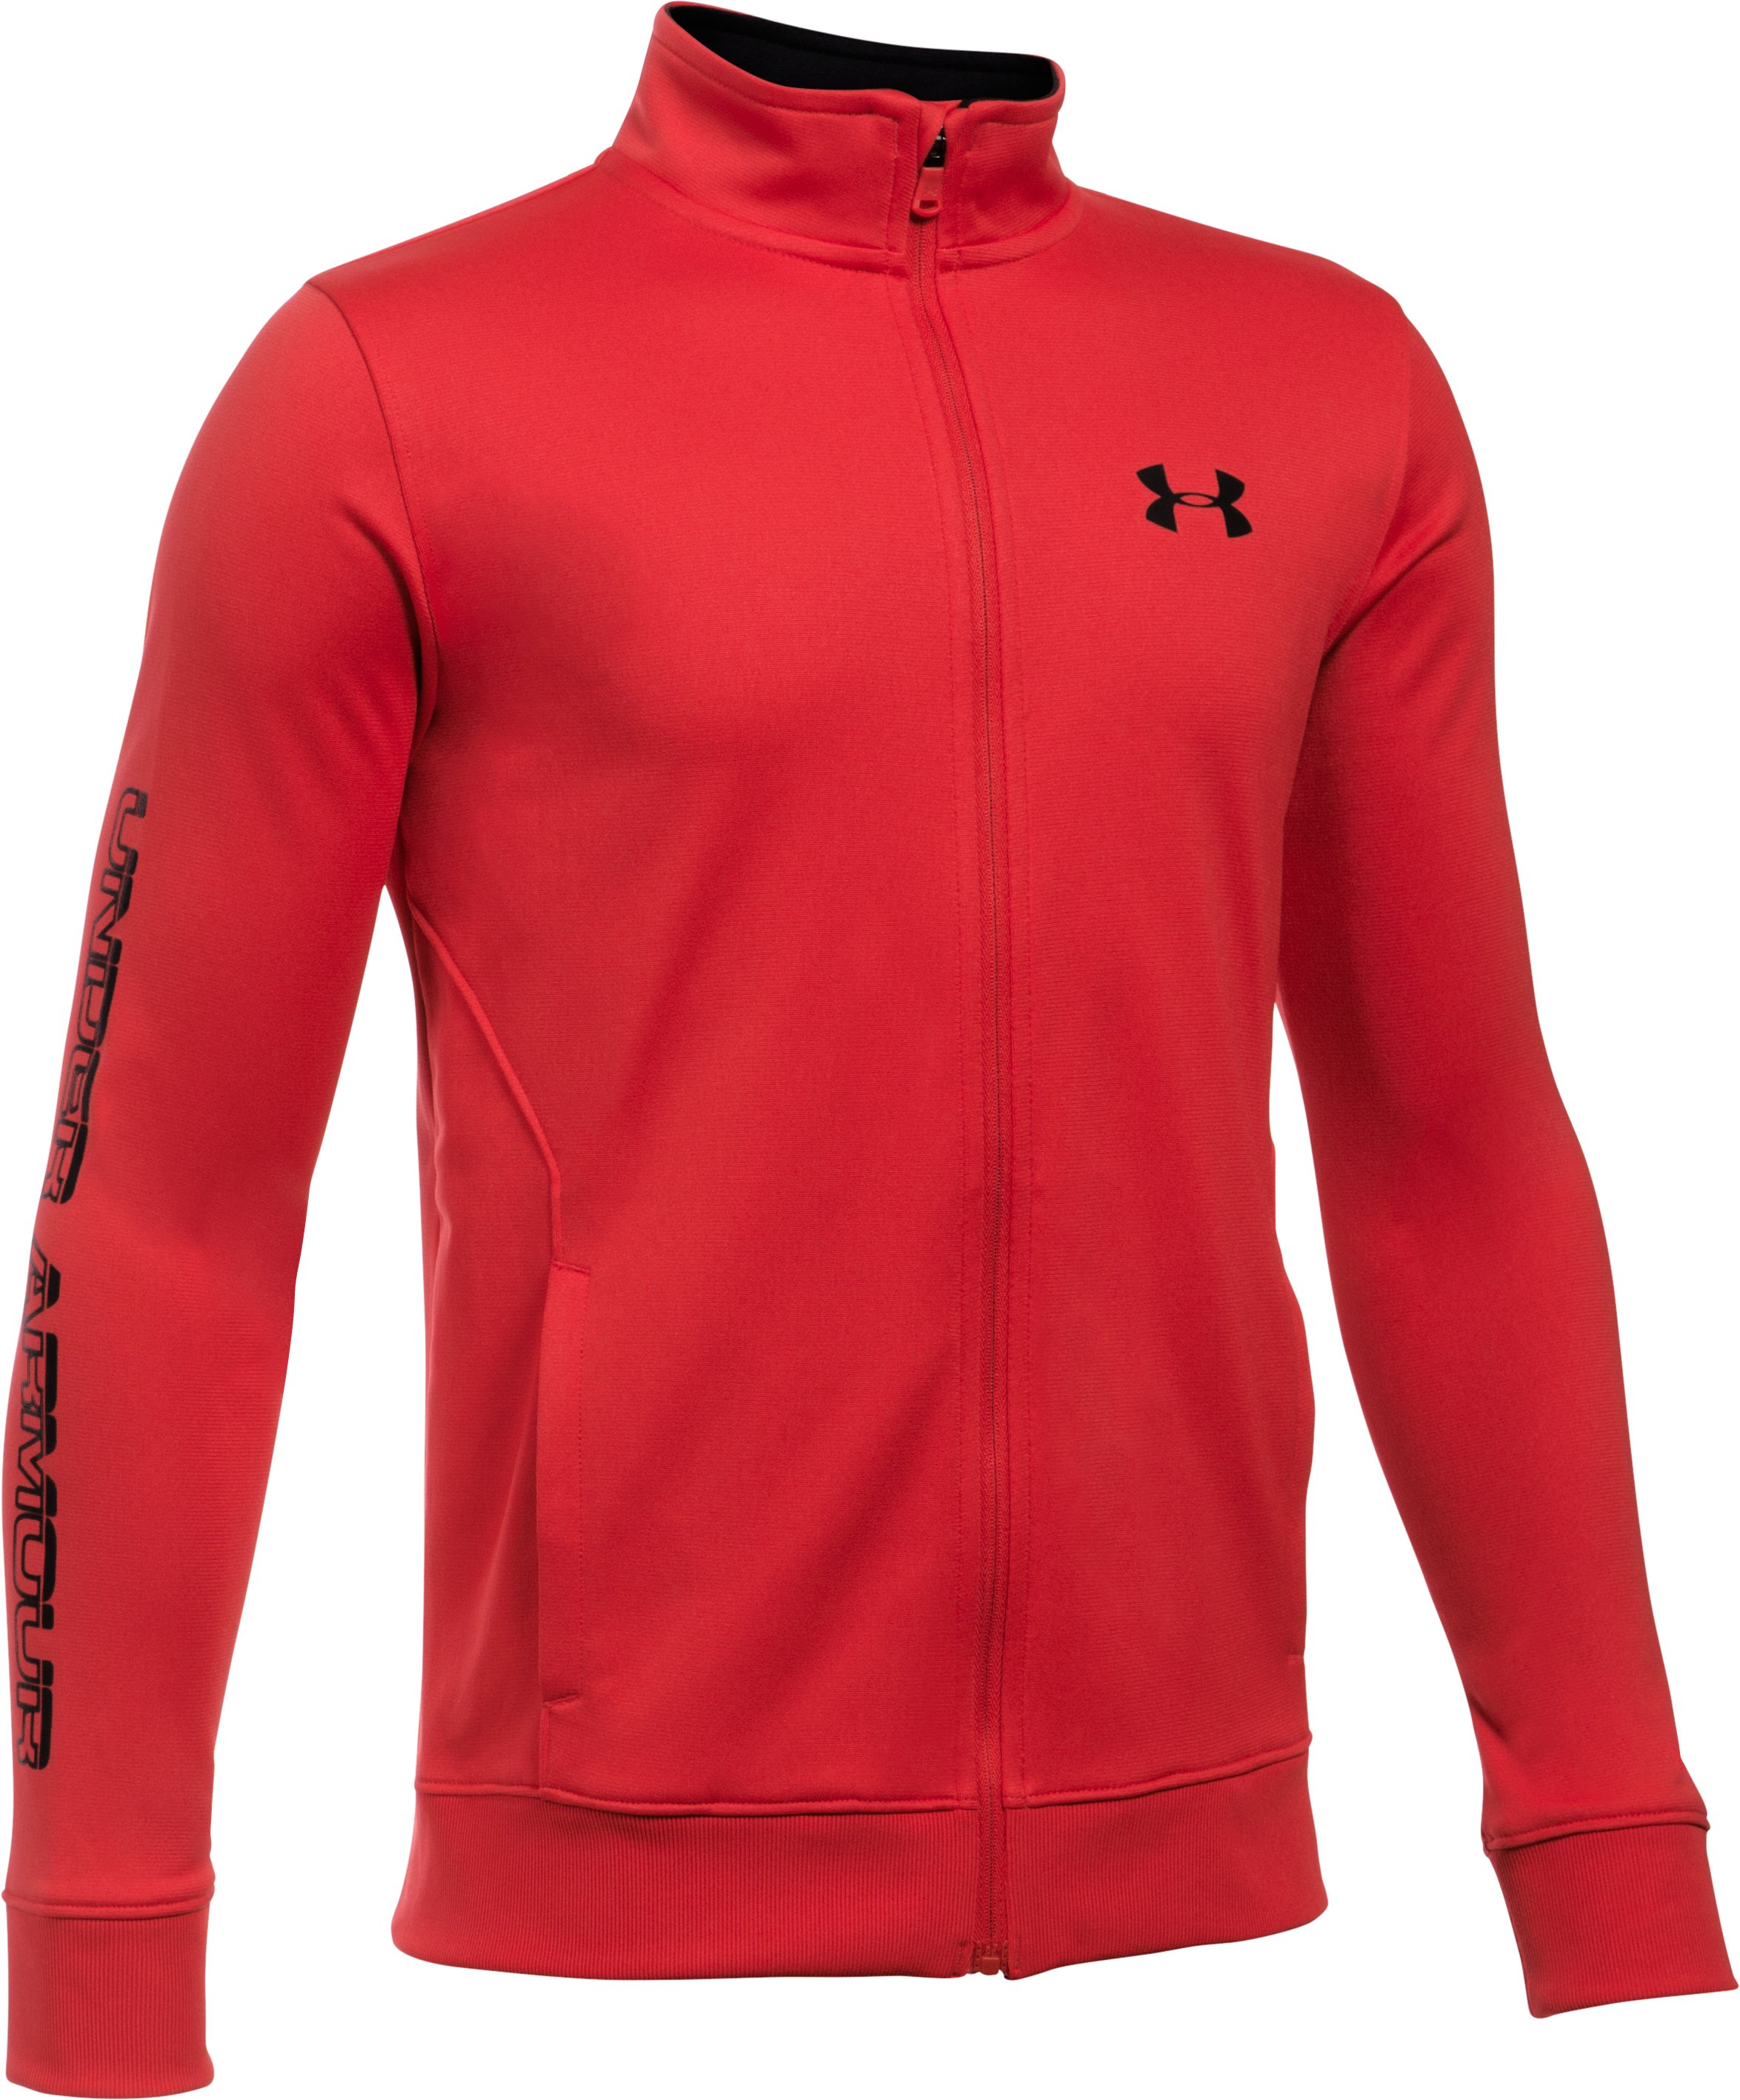 Boys' UA Interval Jacket, Red